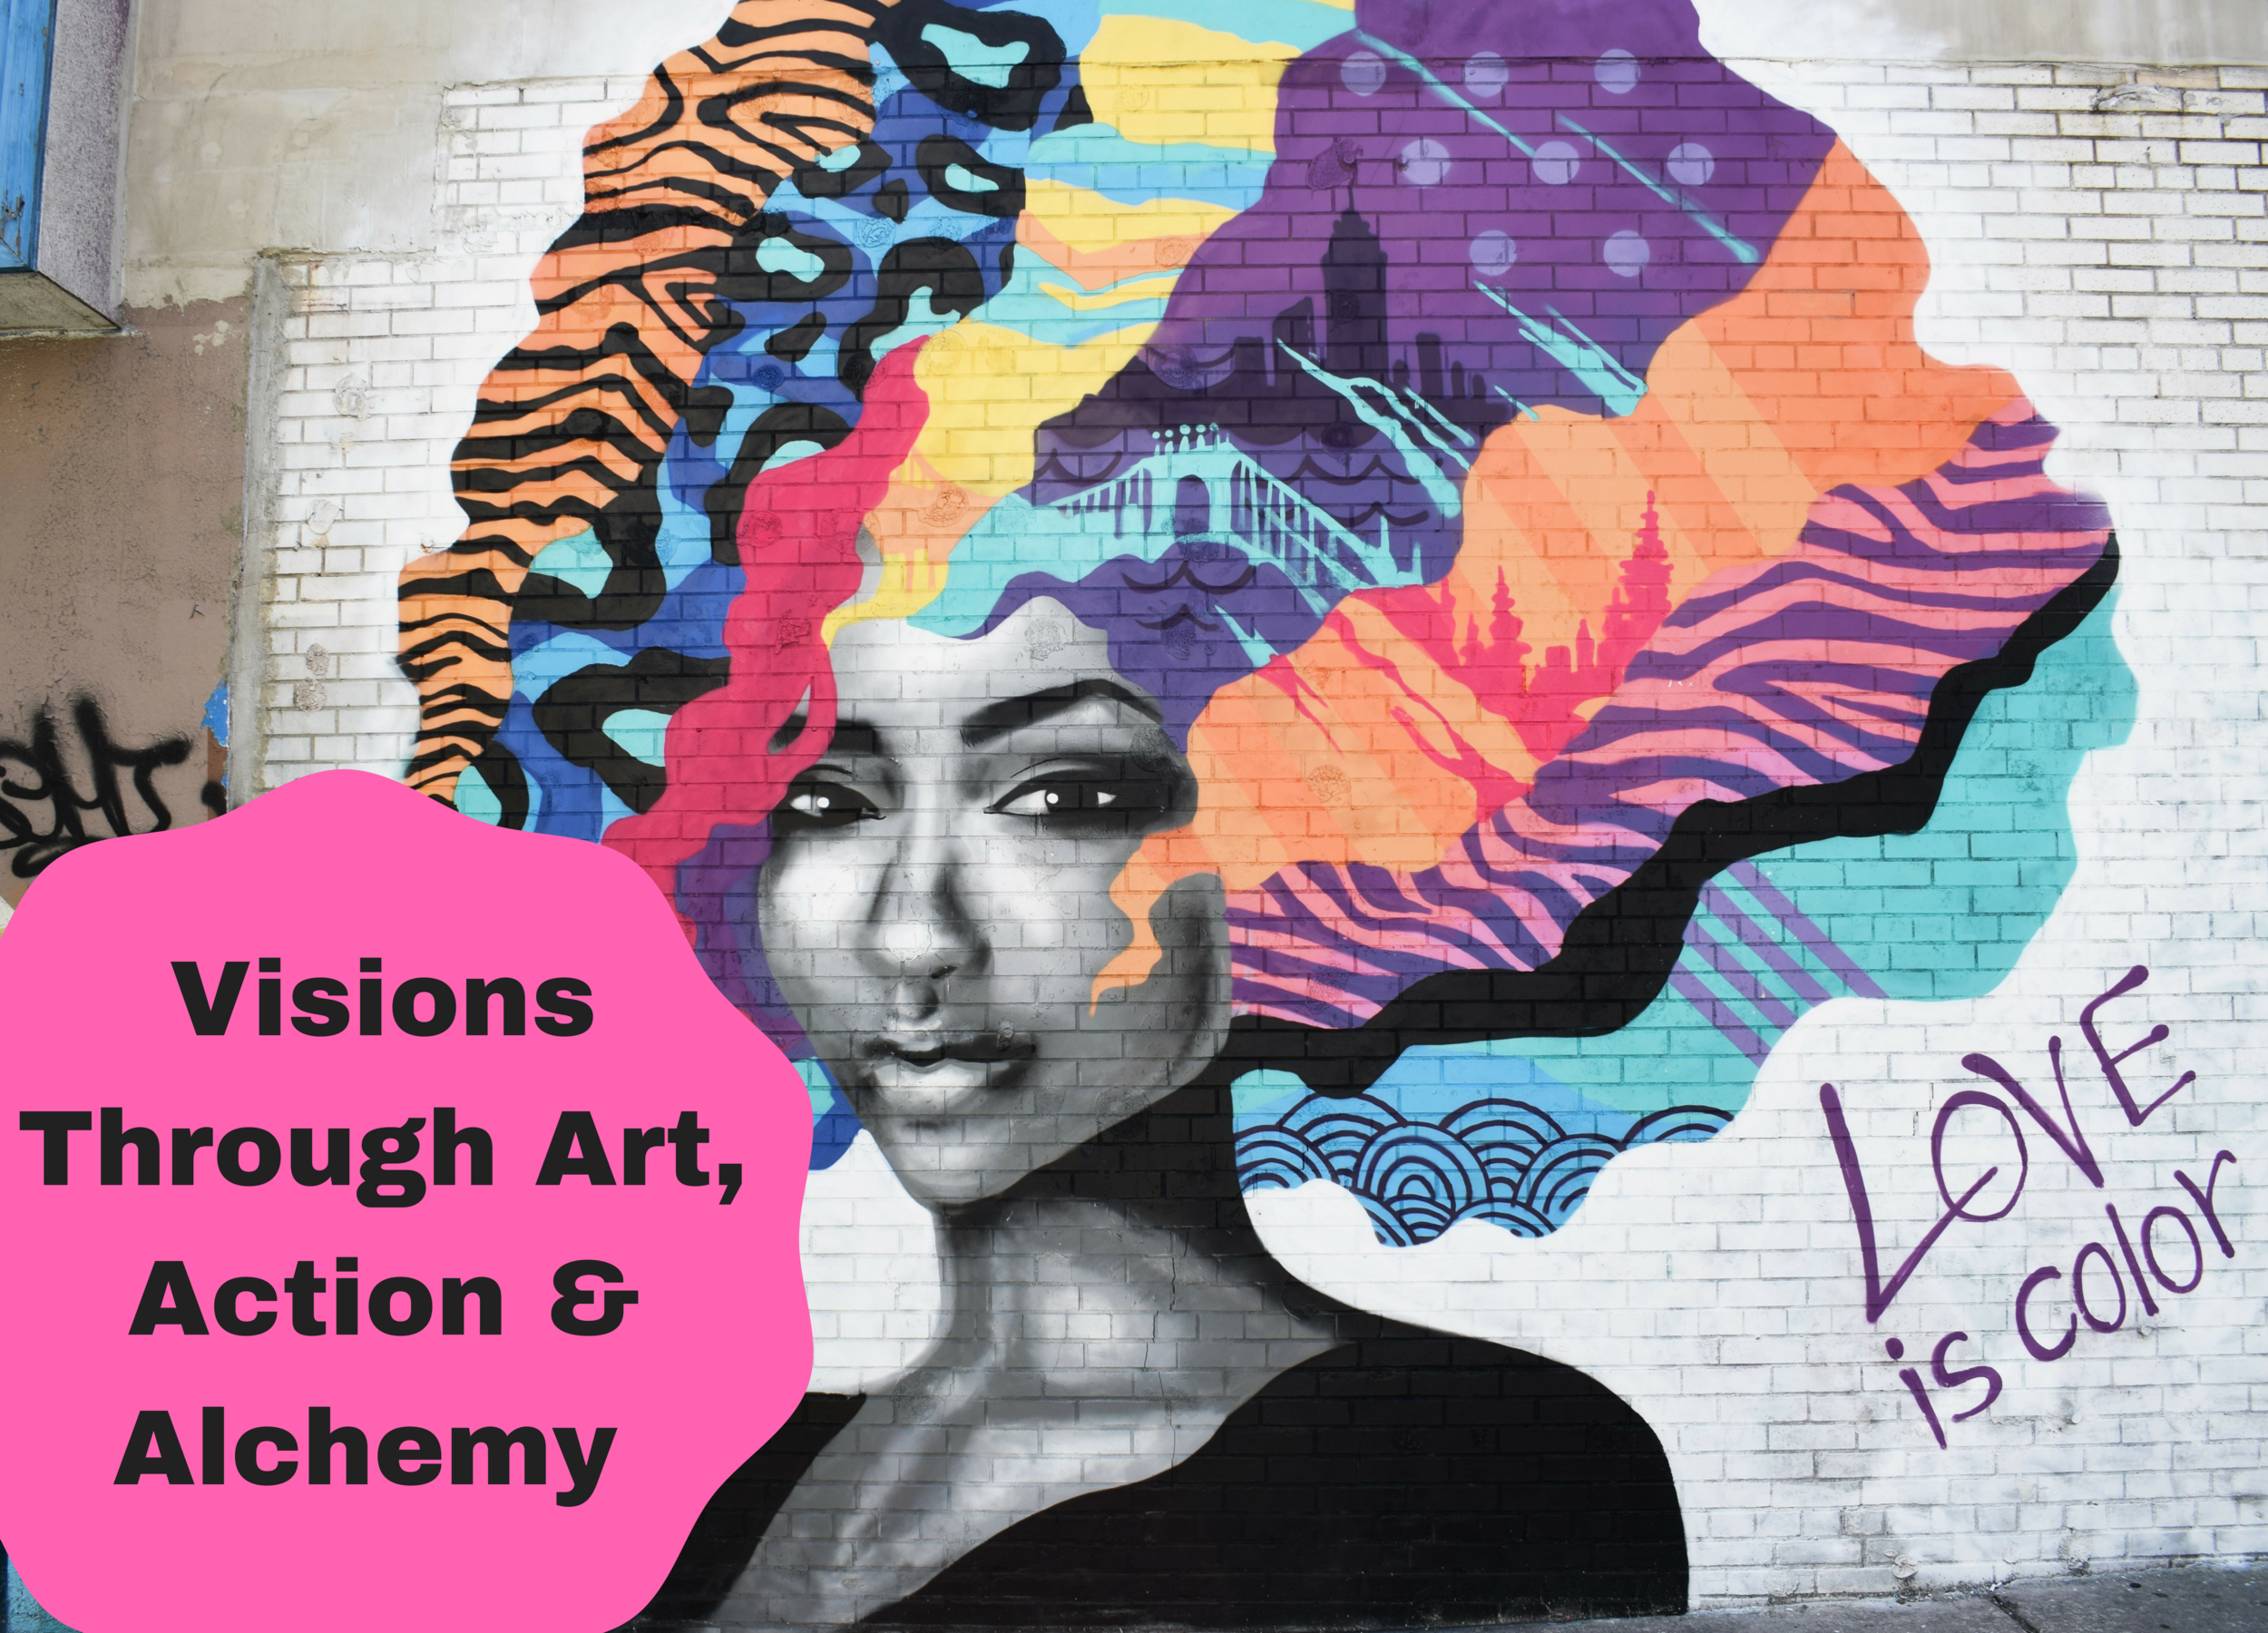 Visions Through Art, Action & Alchemy (1).png